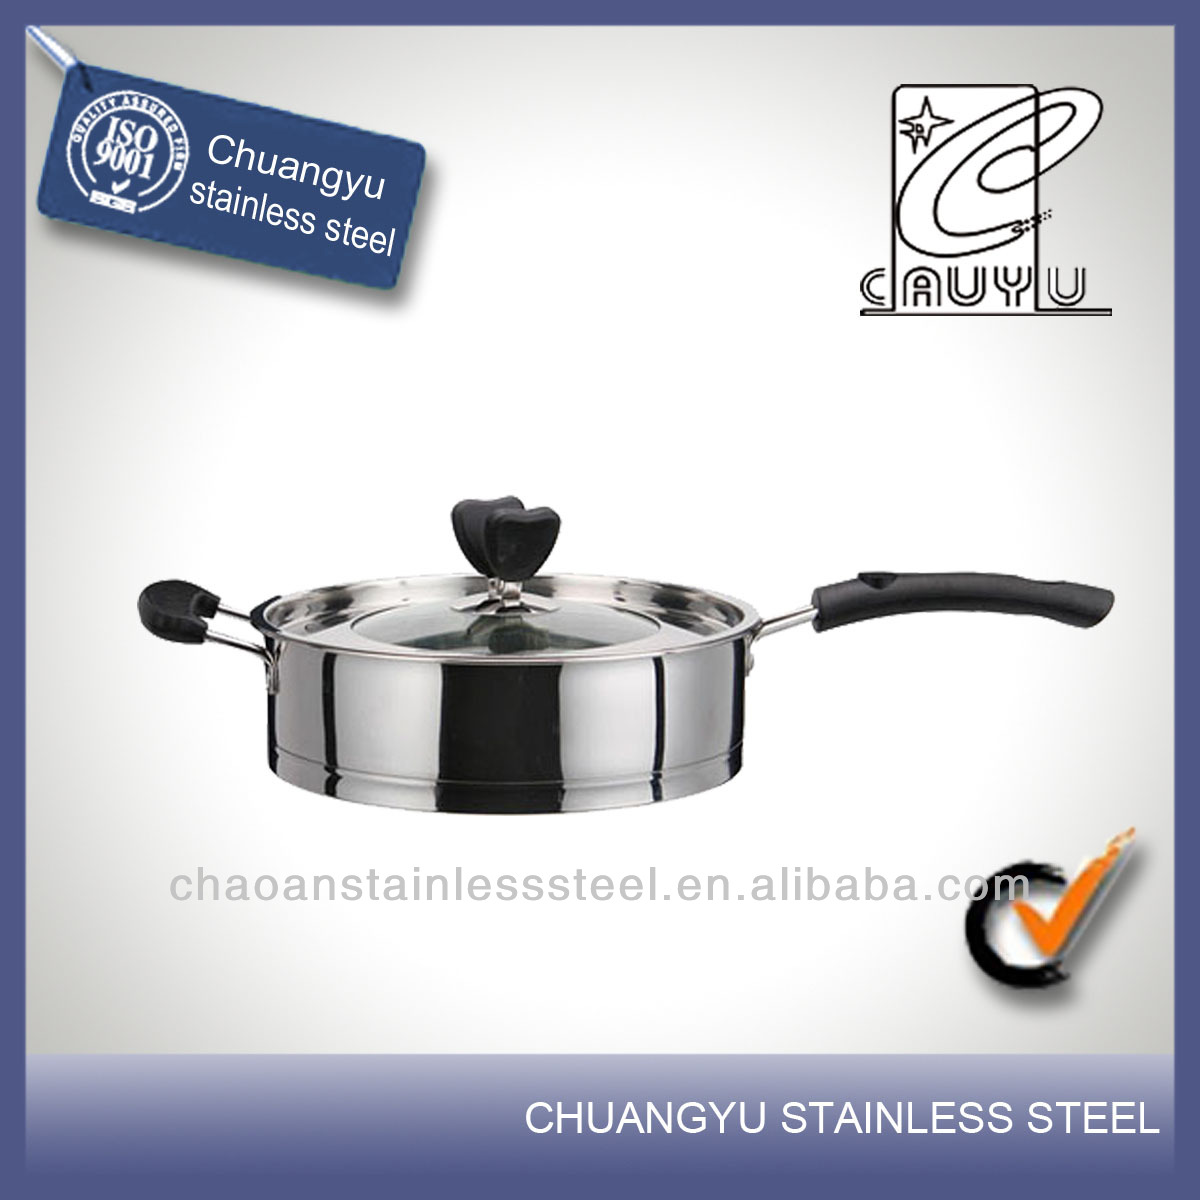 New product stainless steel fly pan